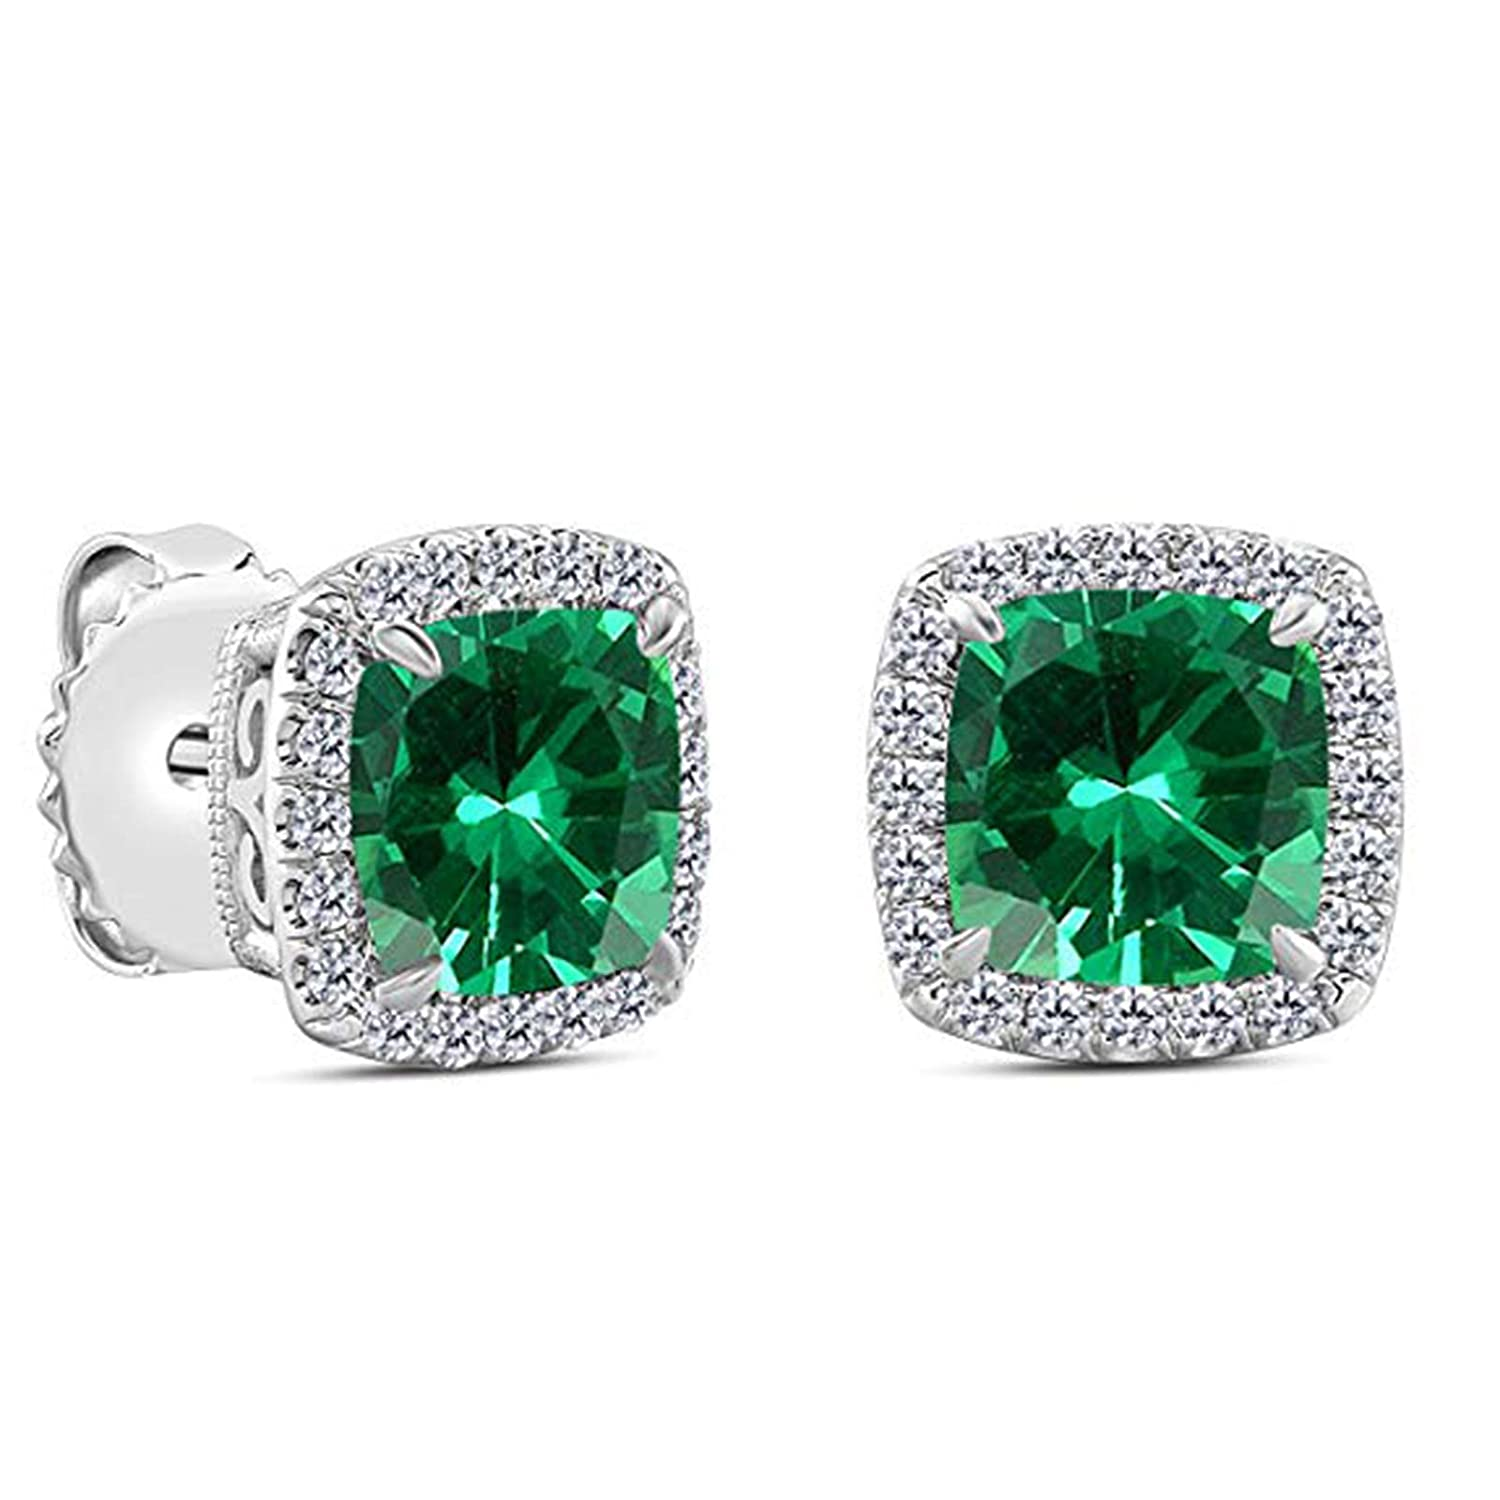 Party Wear Jewellery Suhana Jewellery Stud Earrings Collections 14K White Gold Fn Green CZ for Girls Womens Daily